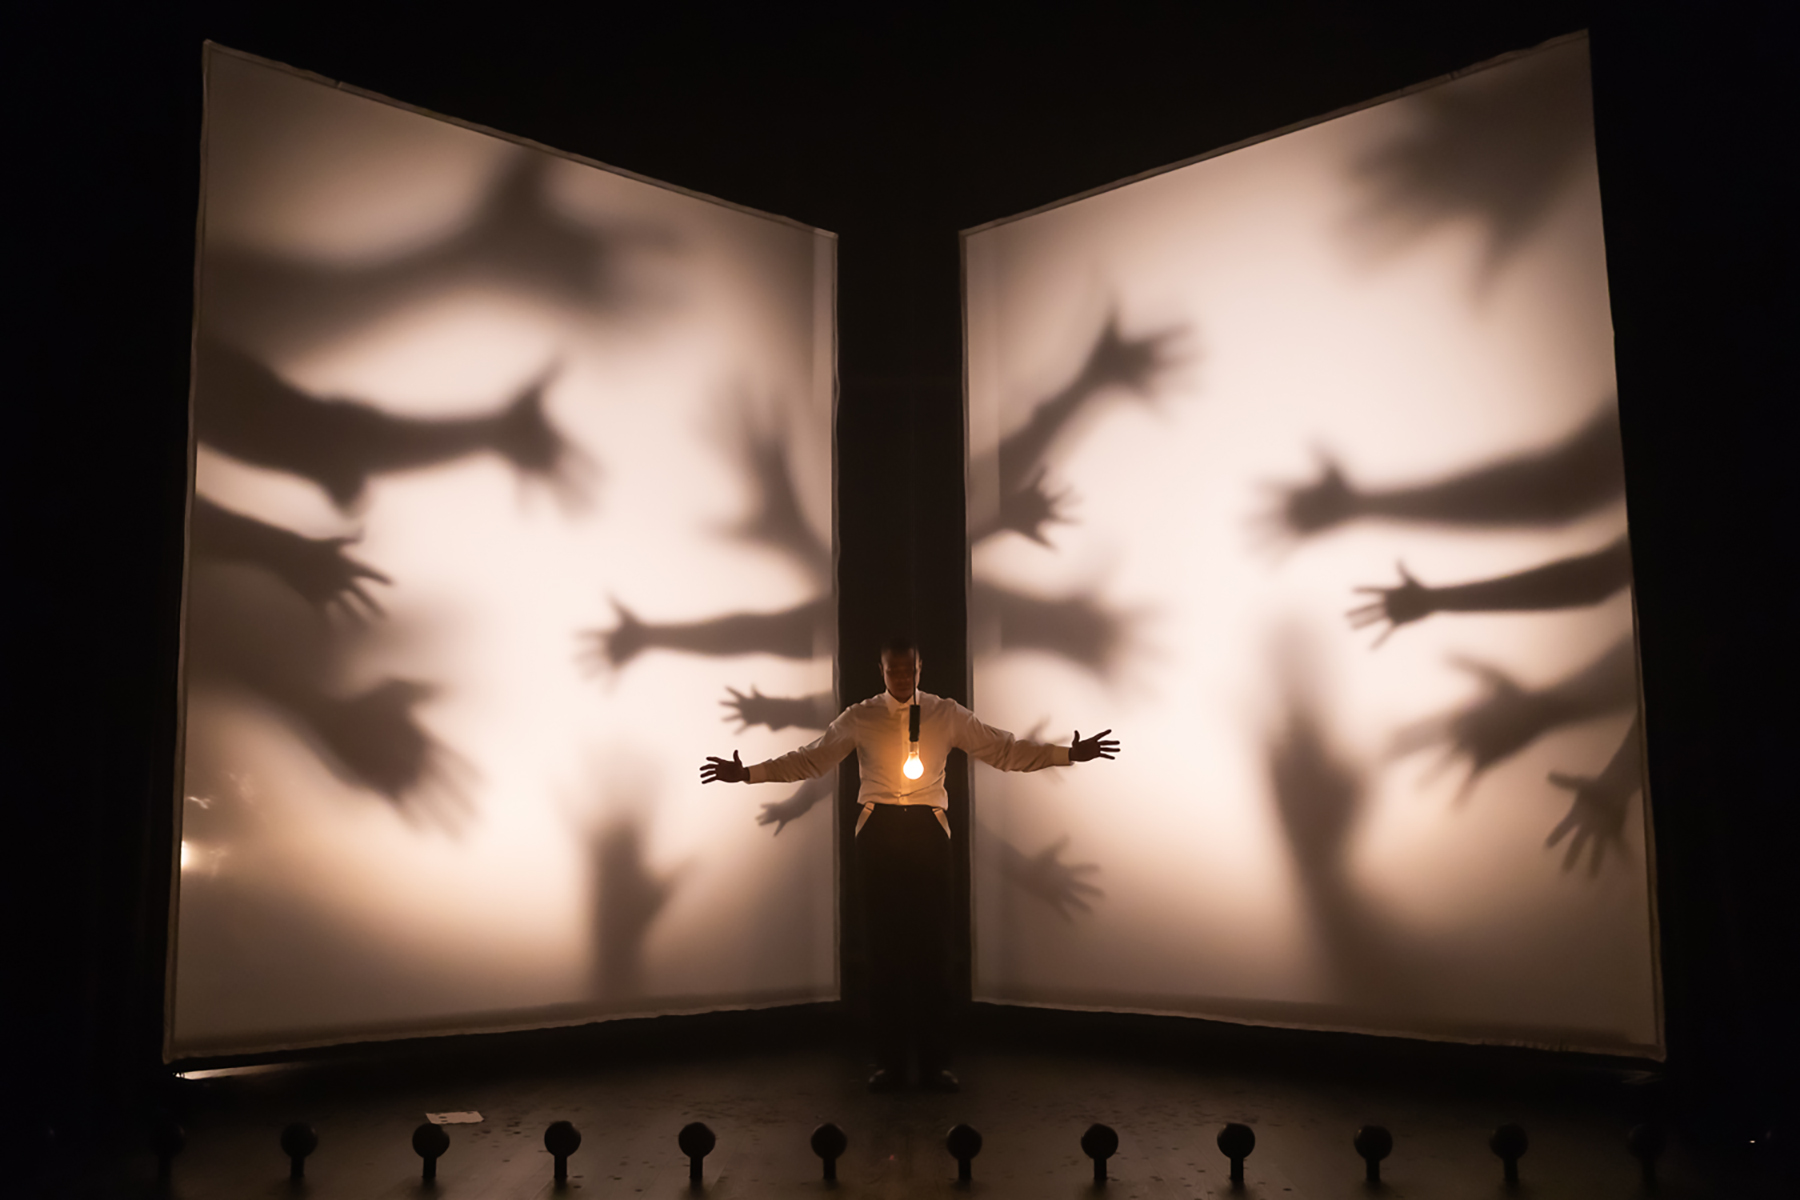 An artistic stage photo with shadows and hands from The Black Clown